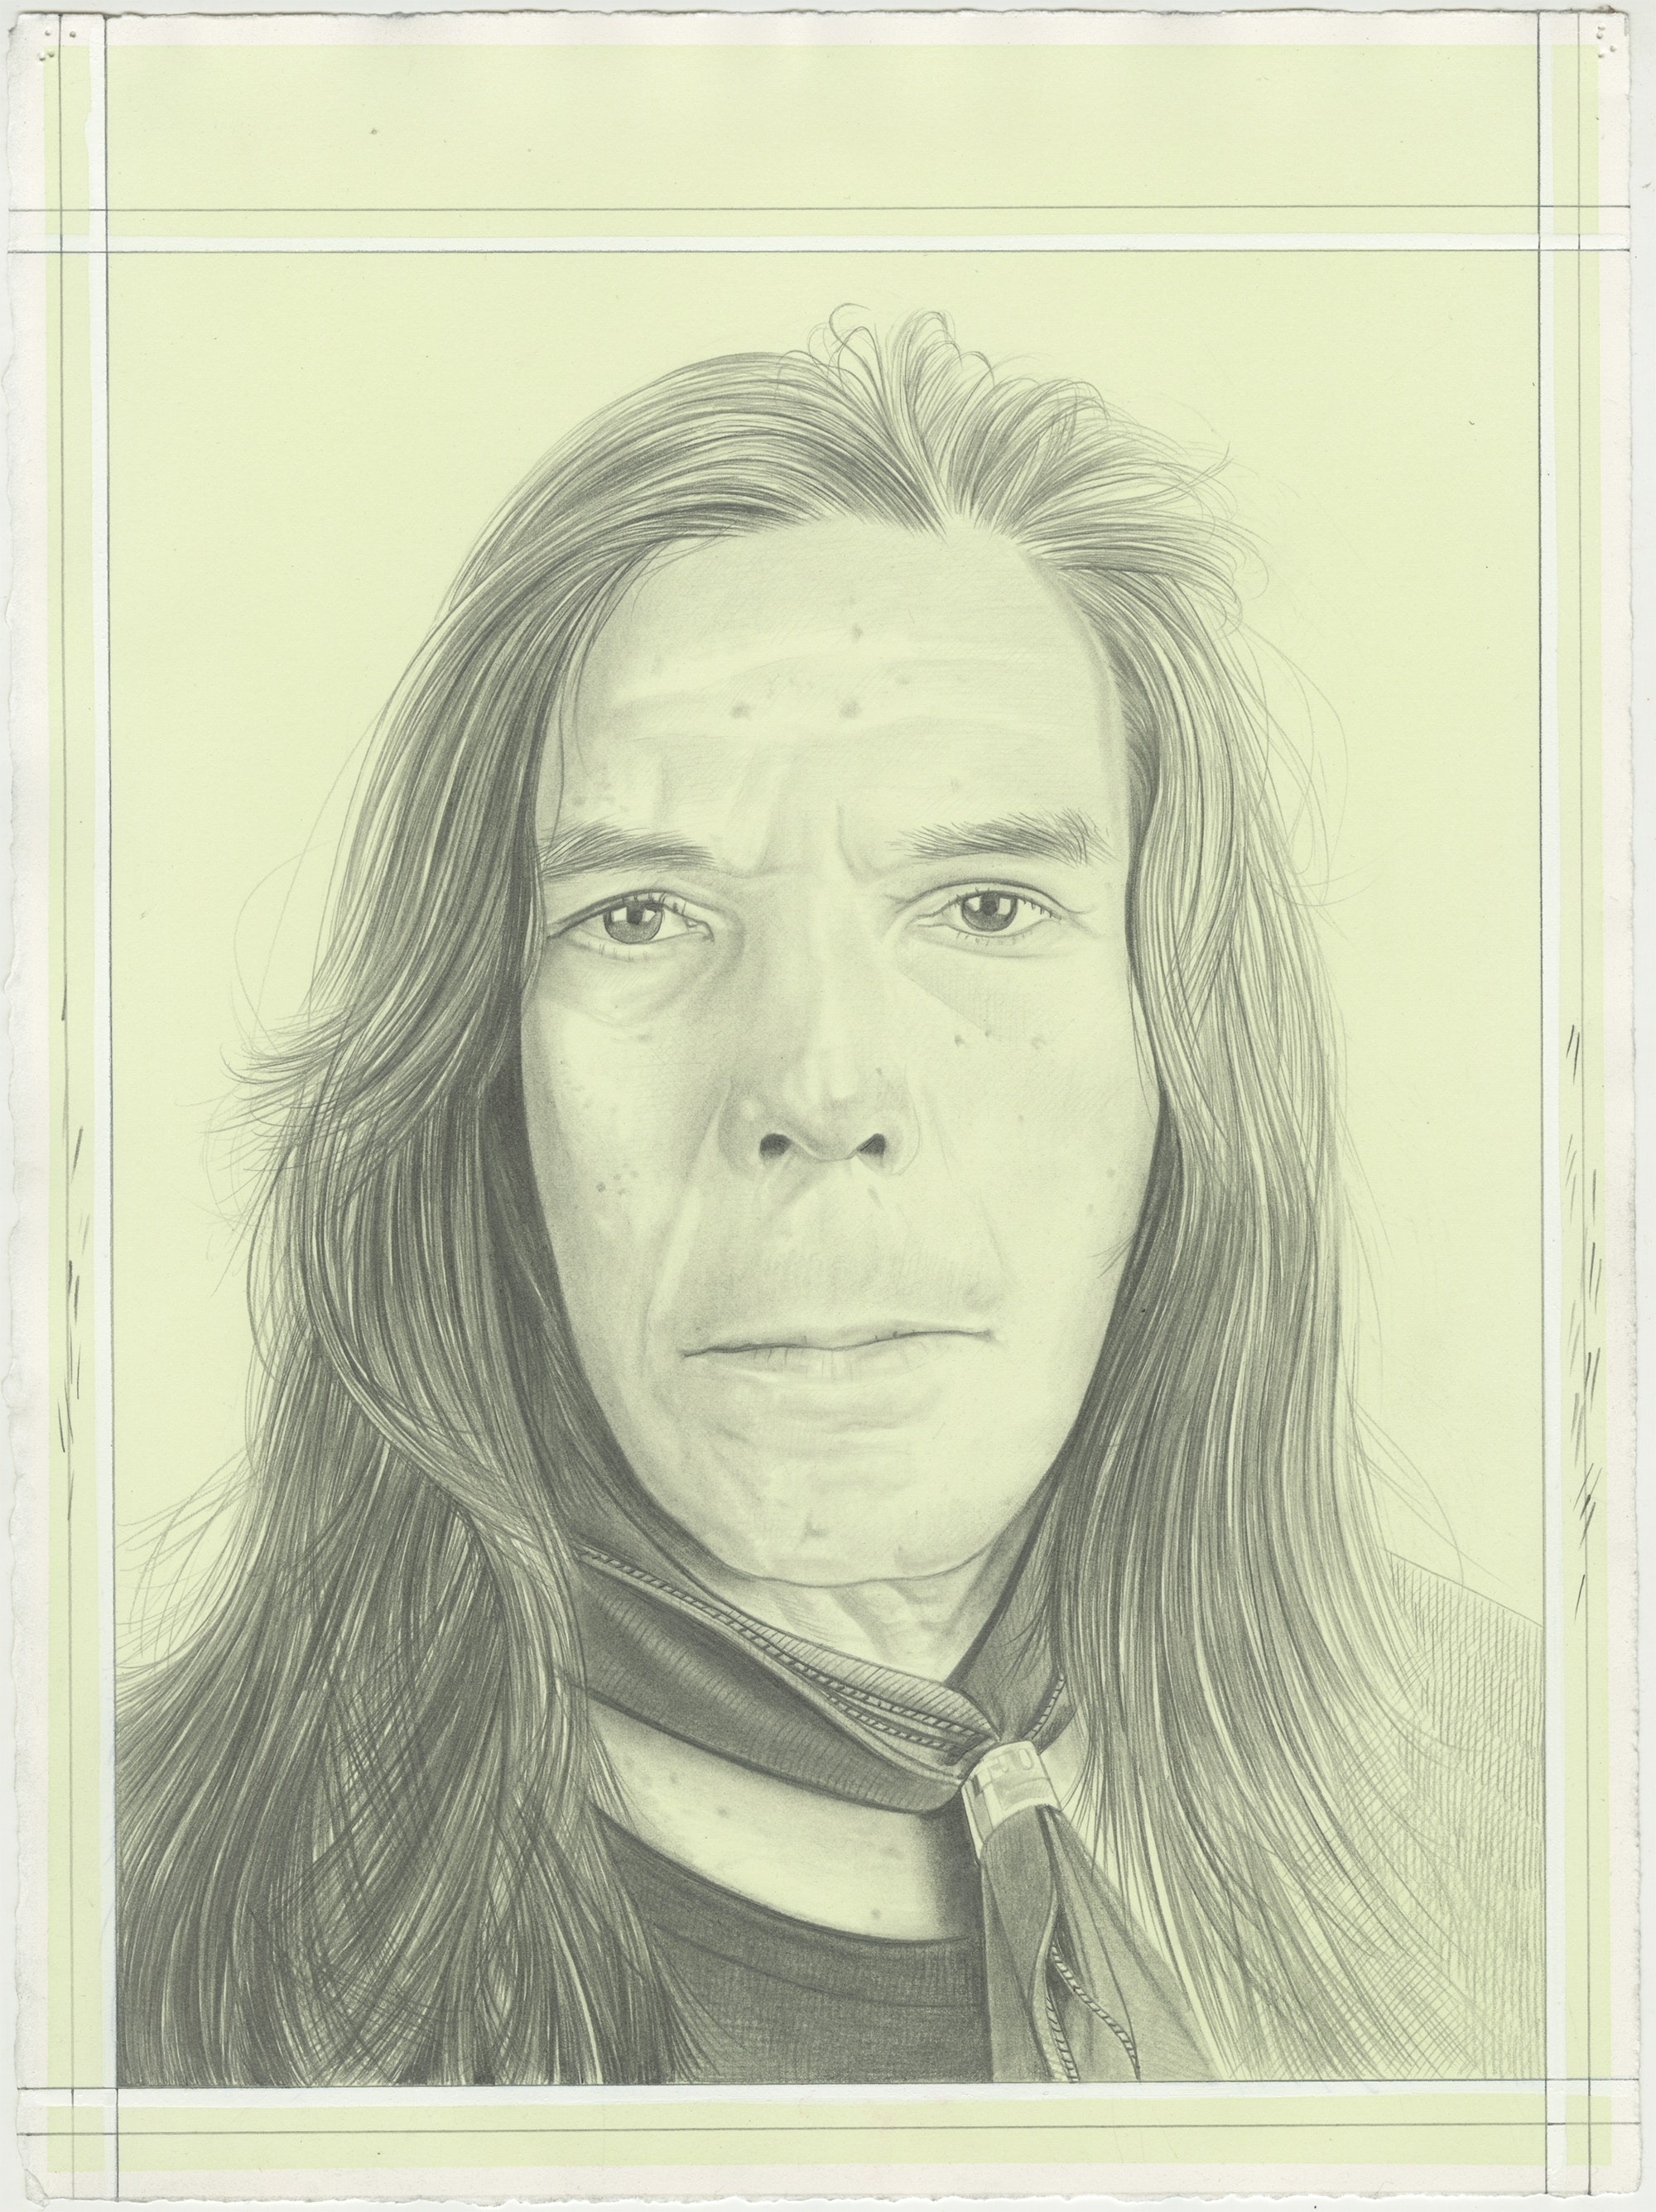 Portrait of Brad Kahlhamer, pencil on paper by Phong H. Bui.